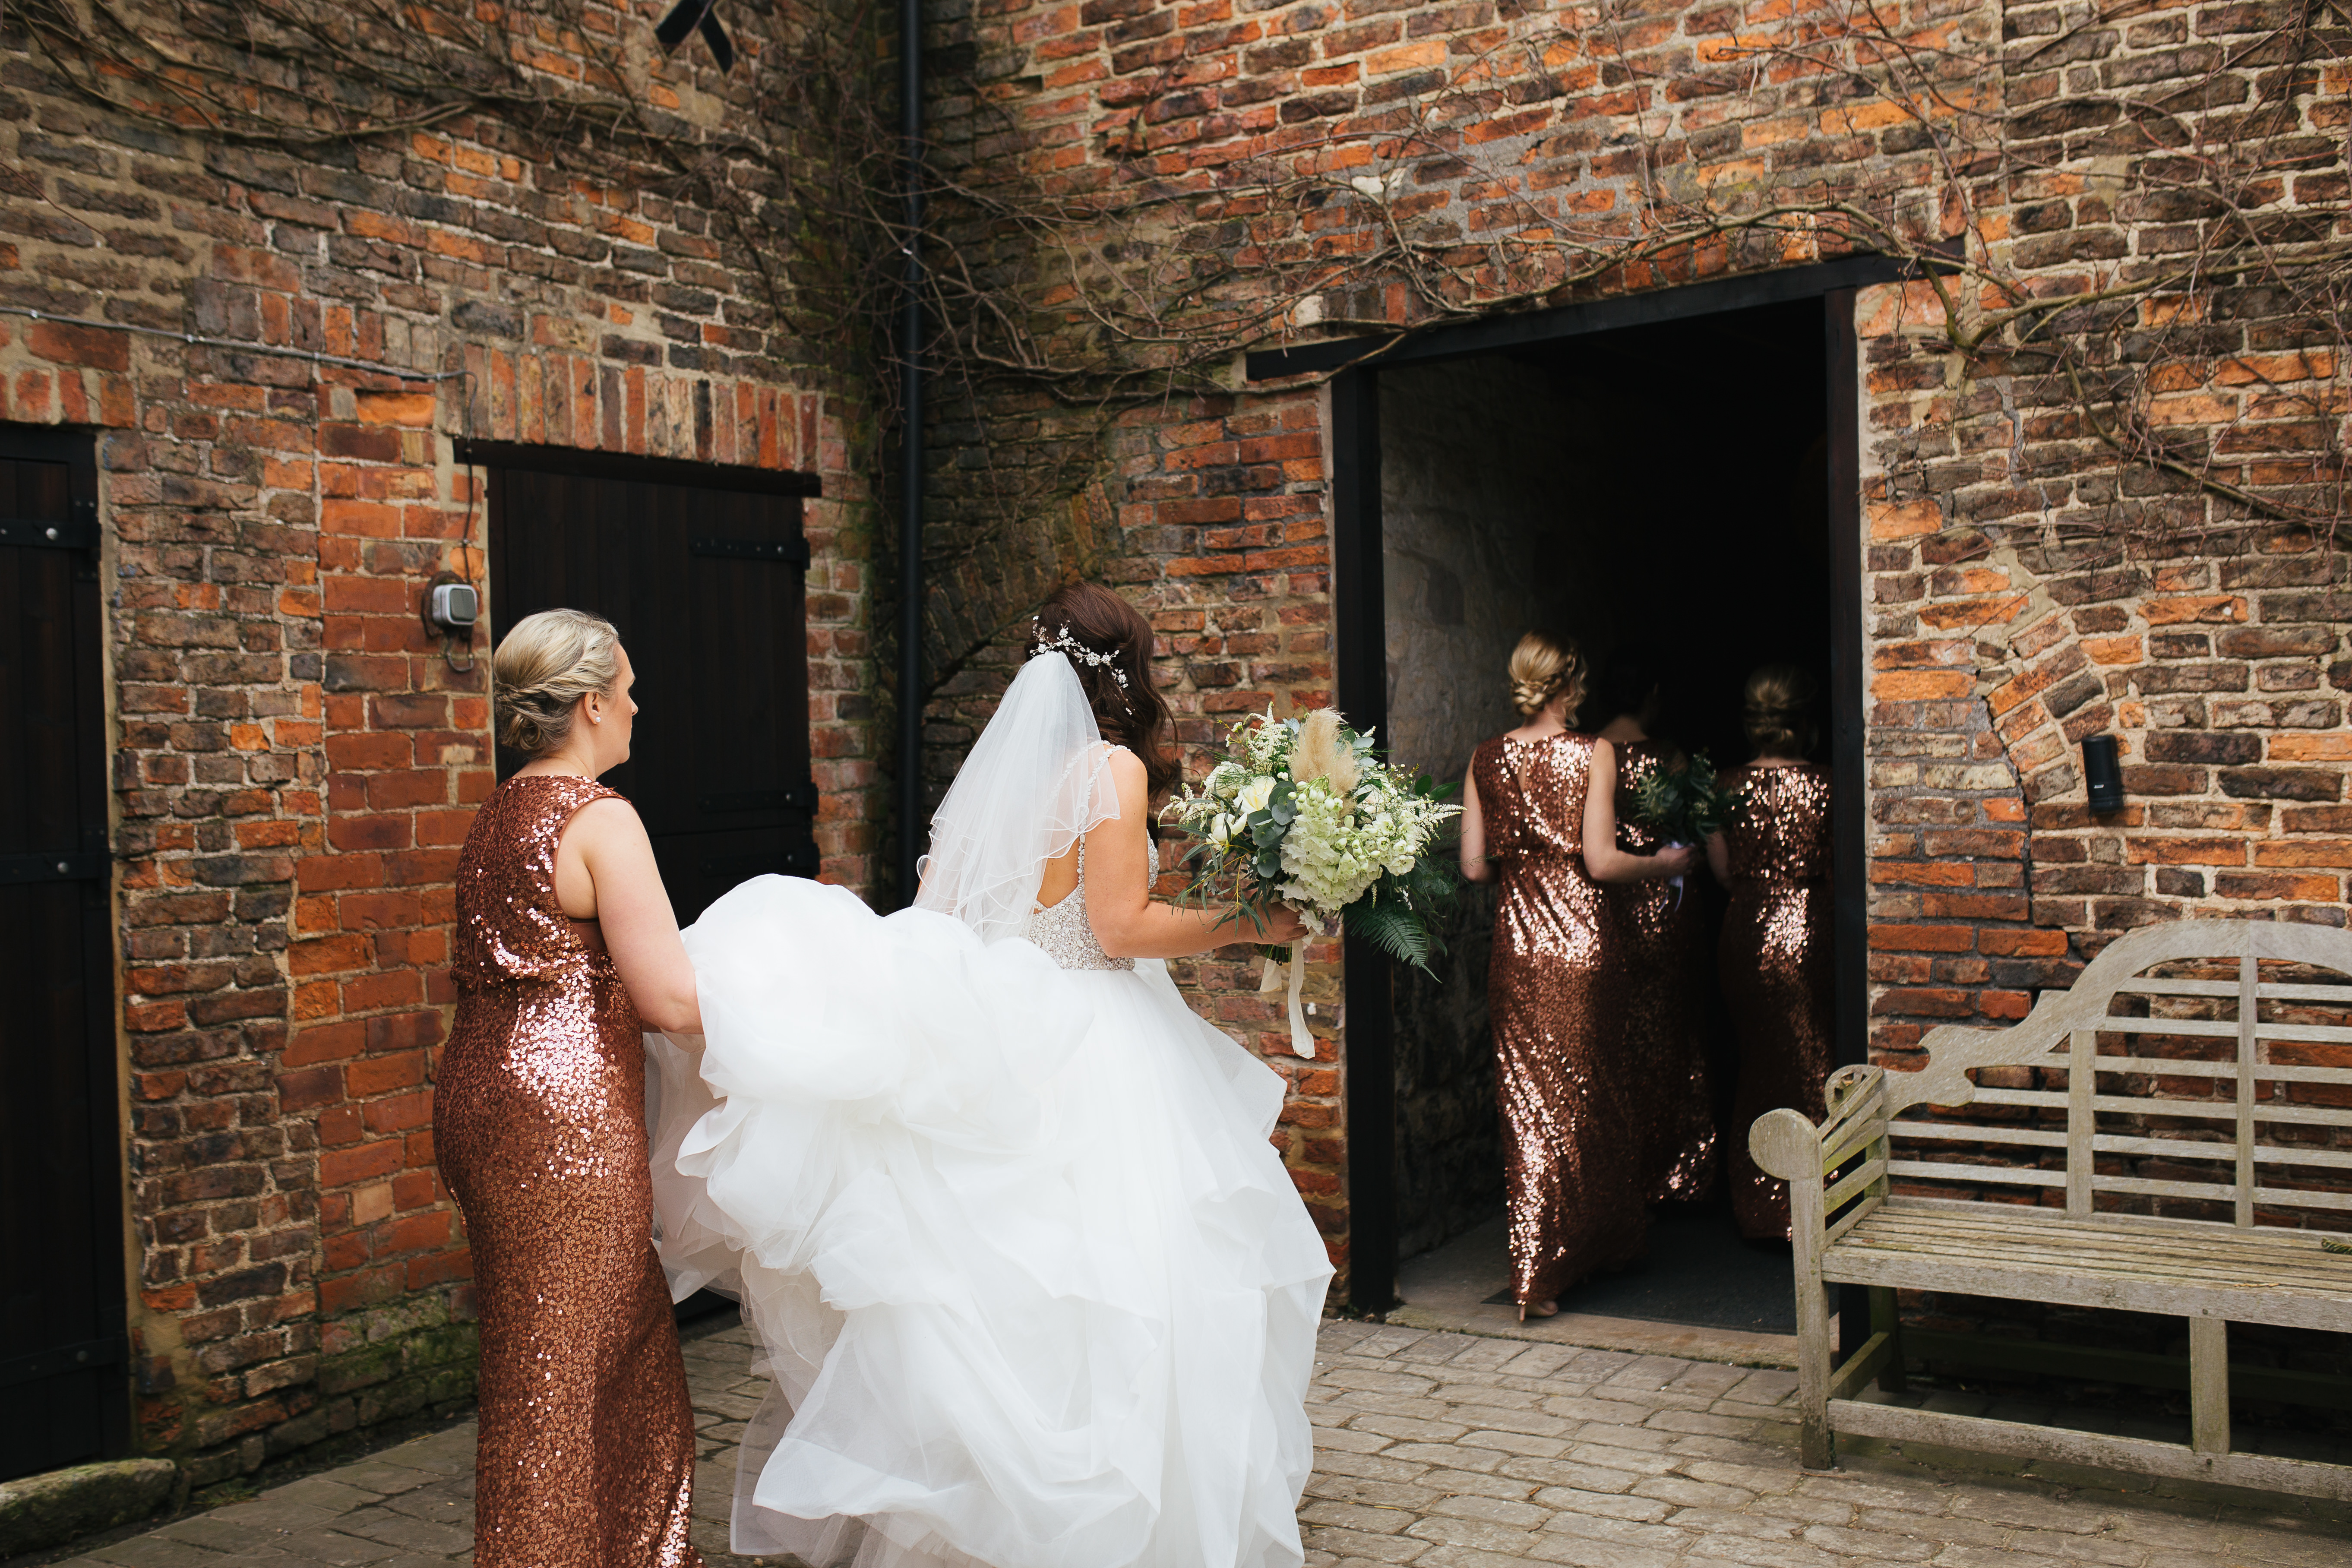 Bridal party the Normans weddings 2019